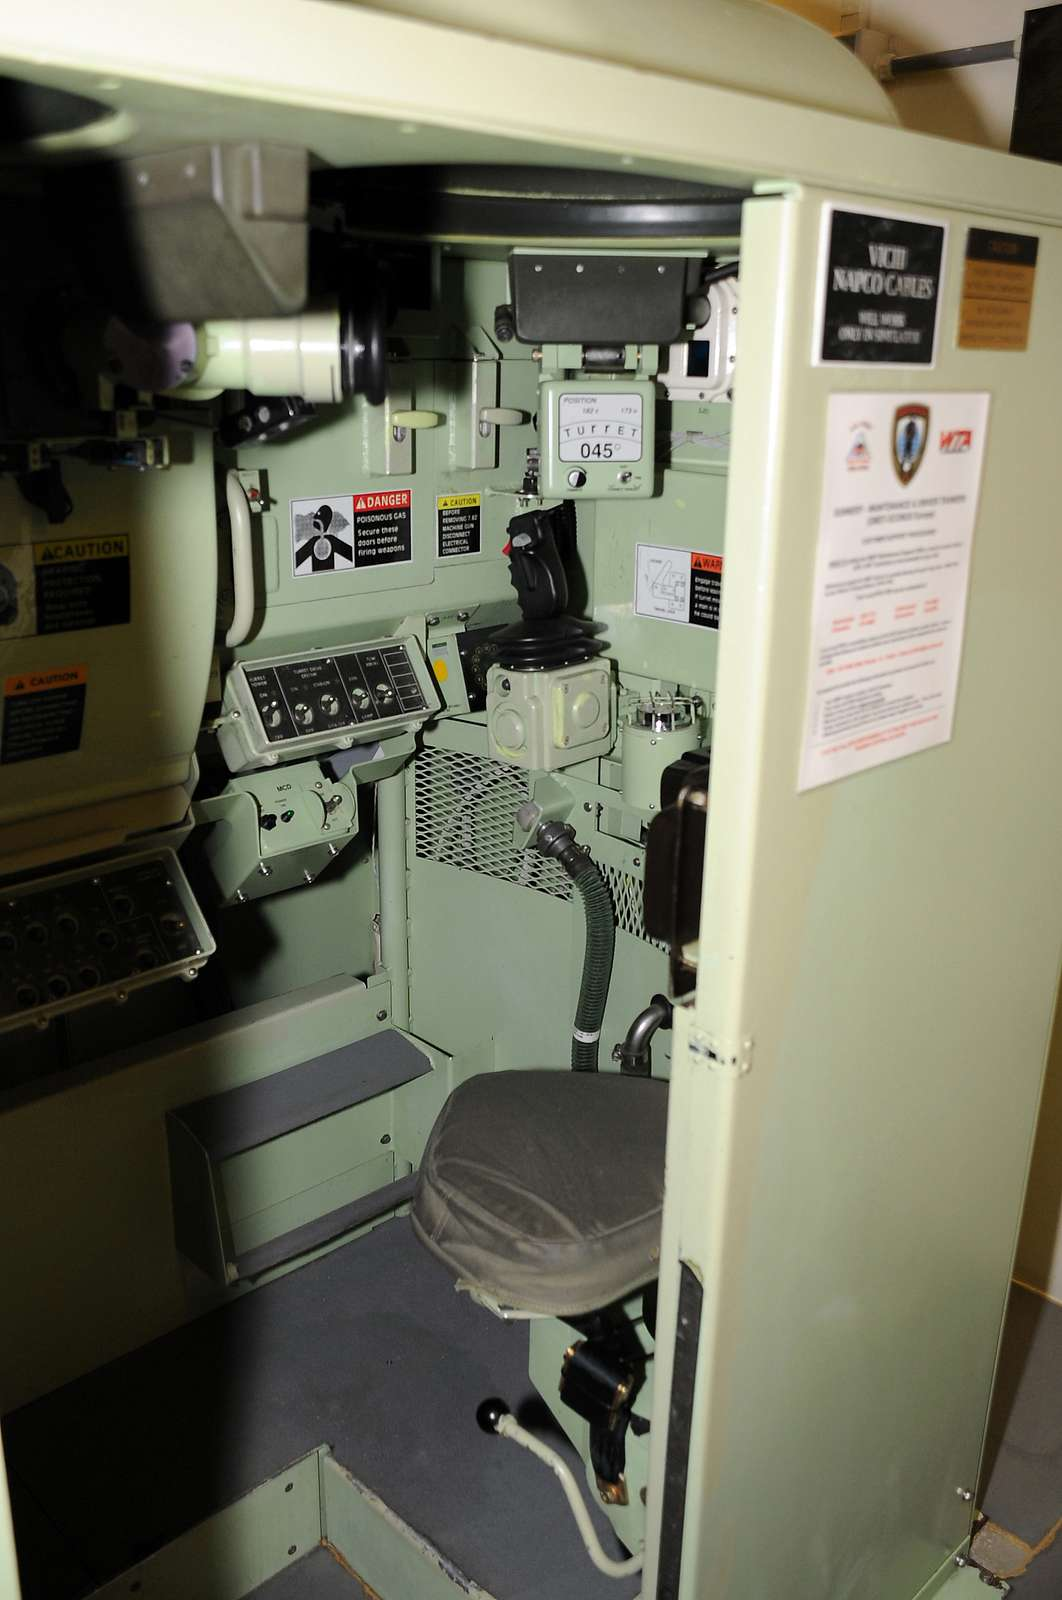 An image of the inside of a Bradley Conduct of Fire